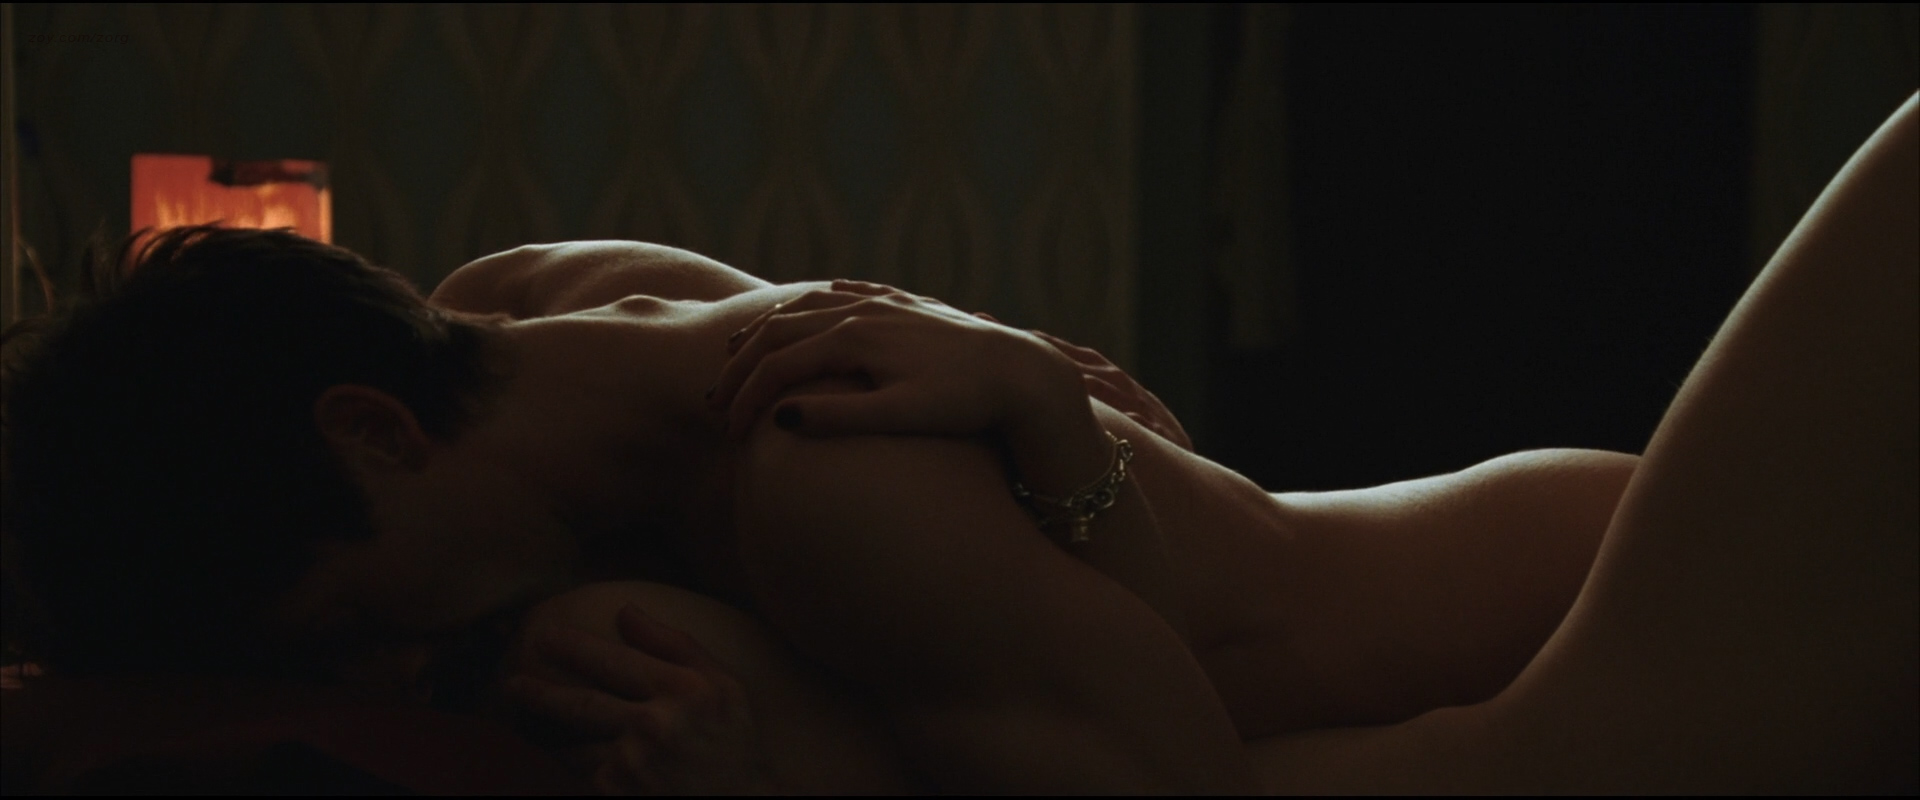 hot pics of keira knightley having sex